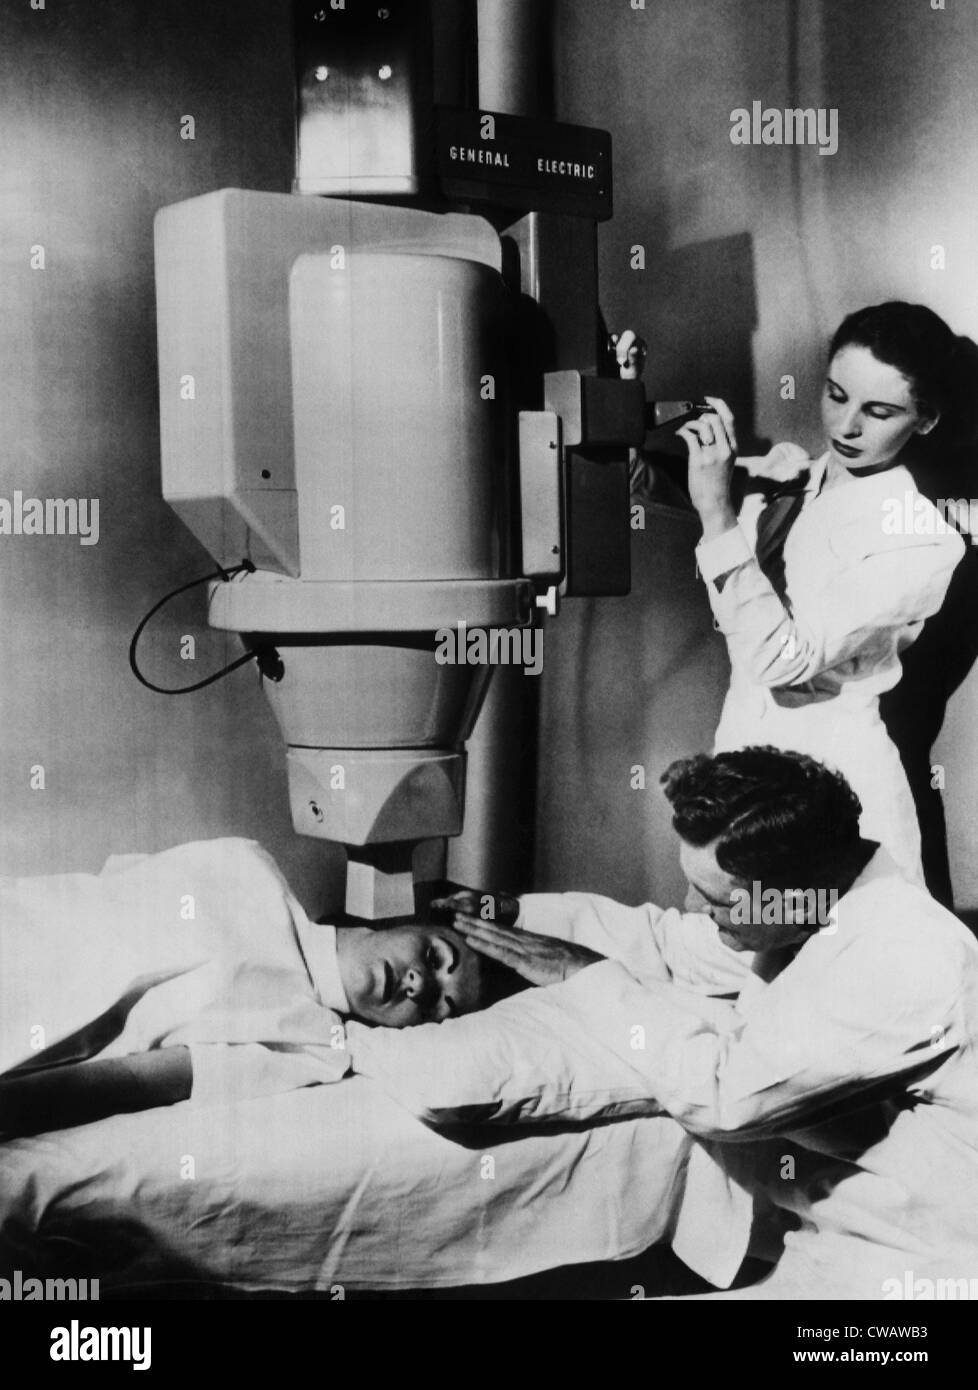 The Cobalt-60 Cancer Tele-Therapy Unit. Instead of an x-ray tube, the unit uses four wafers of radioactive cobalt. - Stock Image